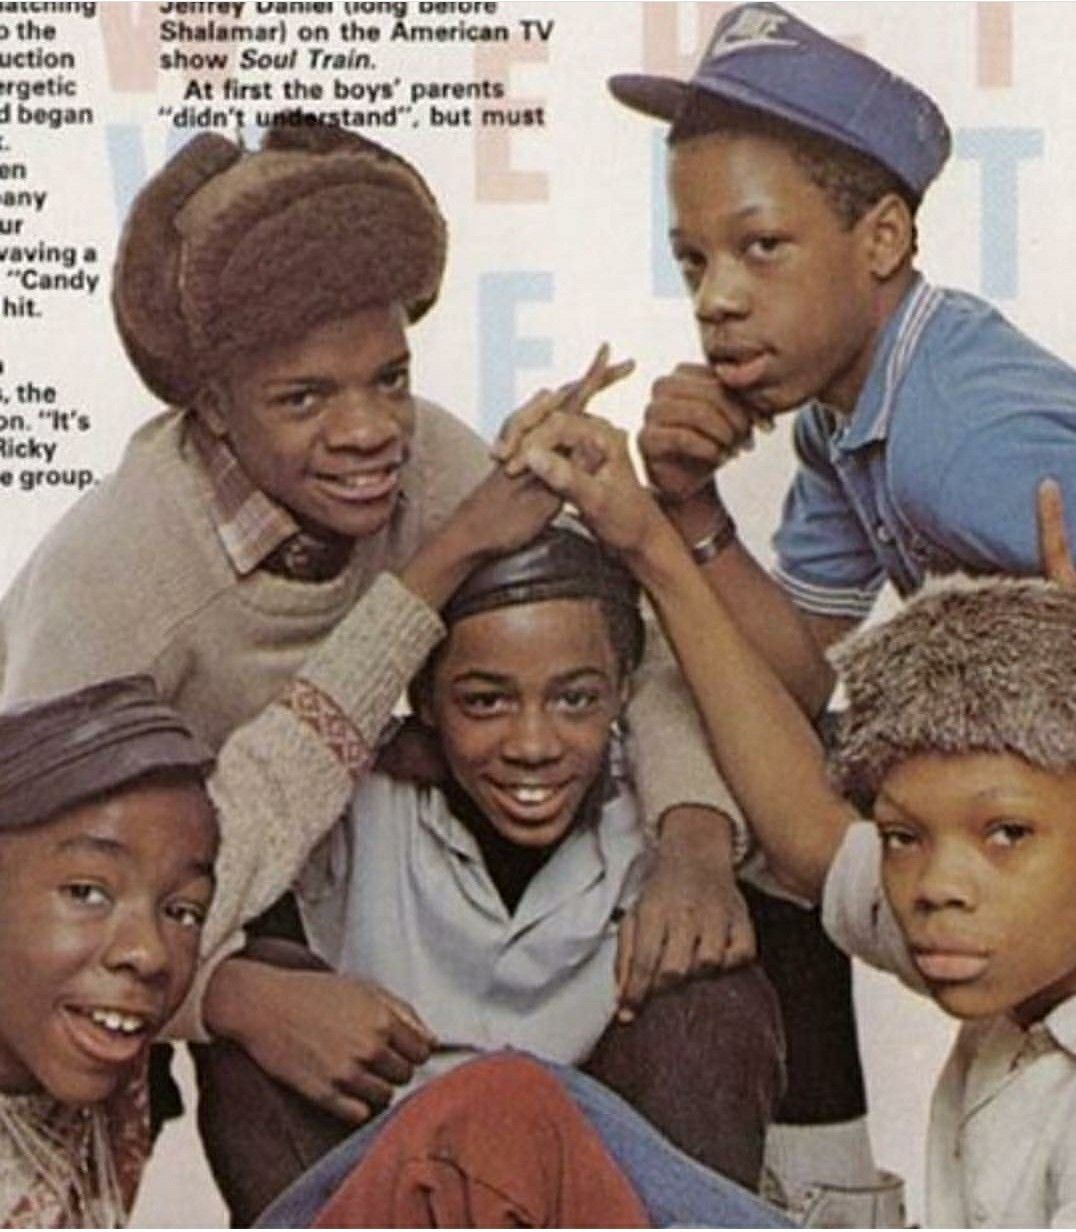 80s New Edition New edition candy girl, Old school music